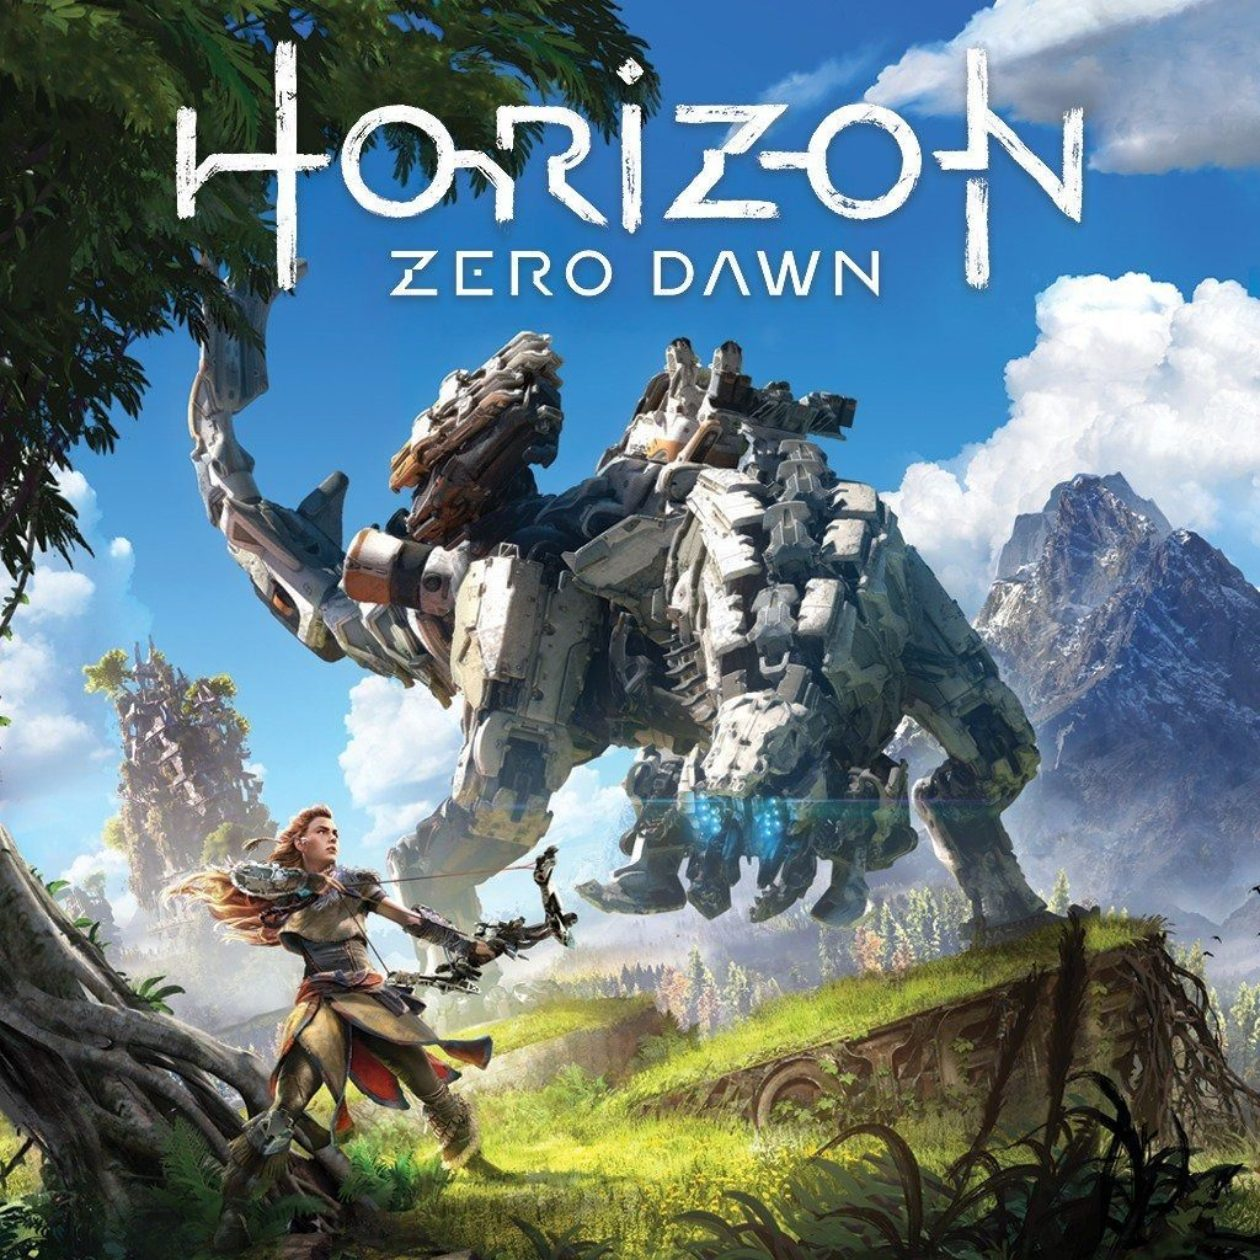 Horizon Zero Dawn Pc Digital D Nq Np 947656 Mlm26827952056 022018 F